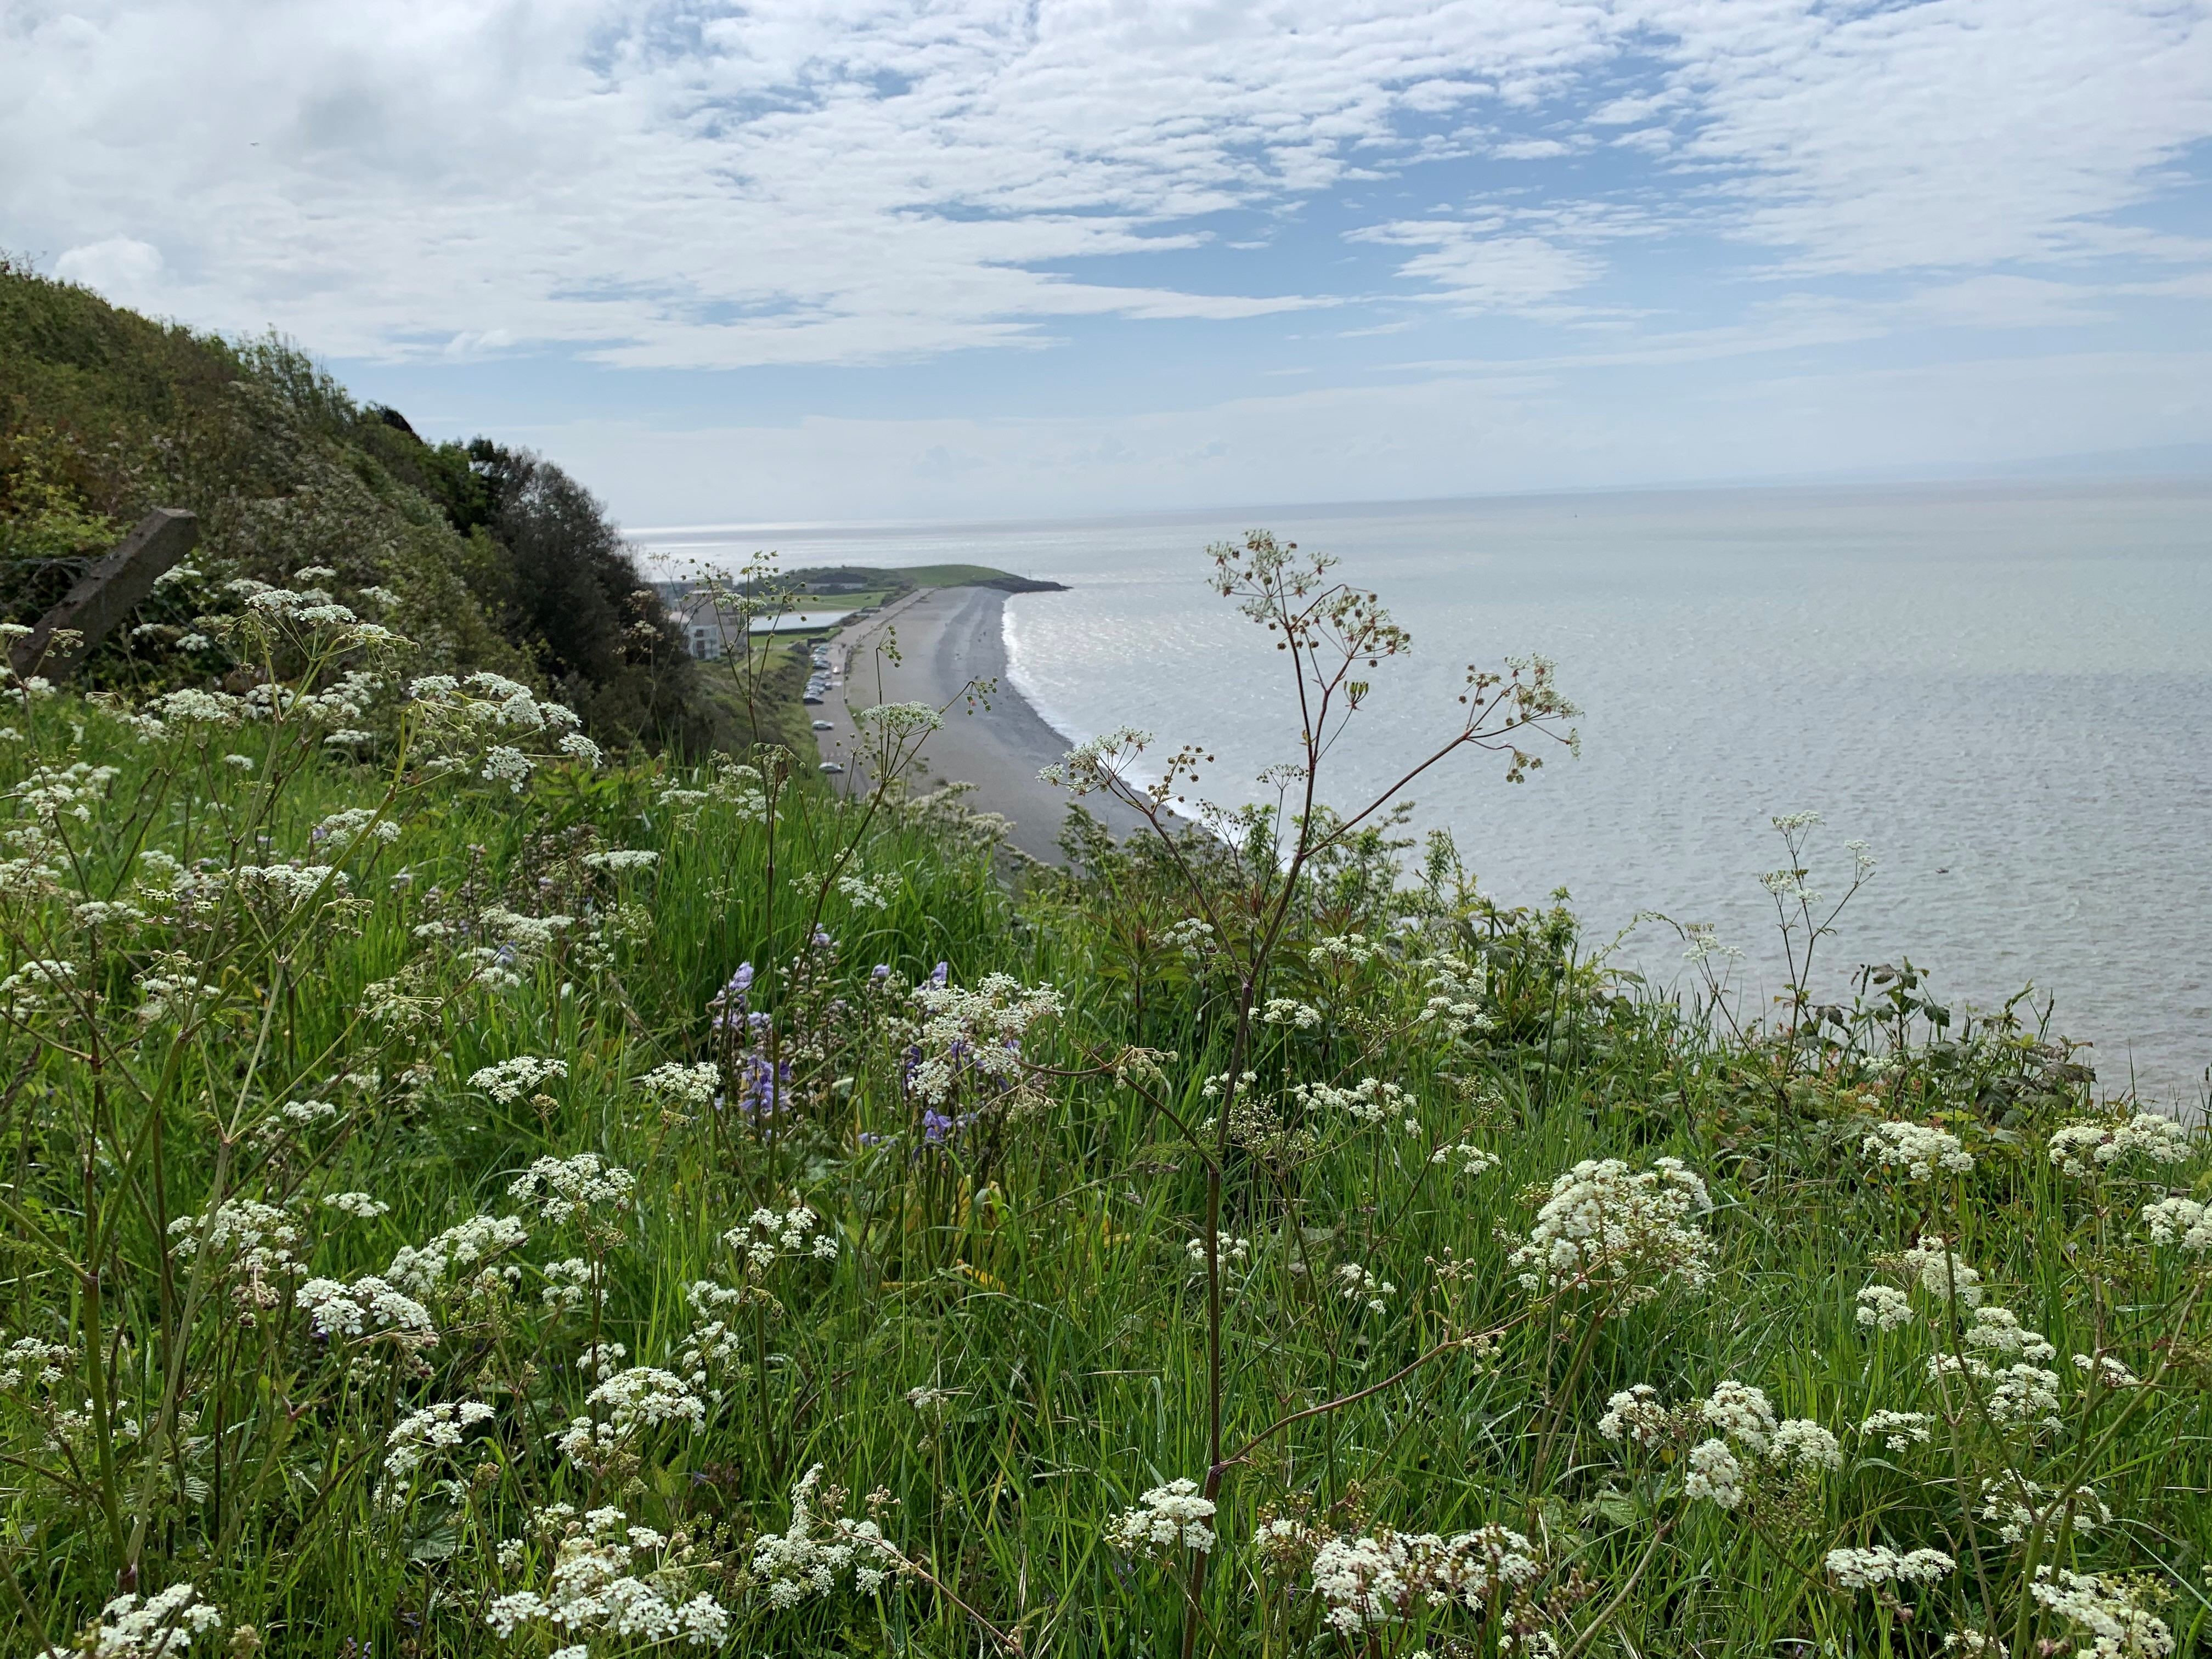 The Knap and Porthkerry Circular trail